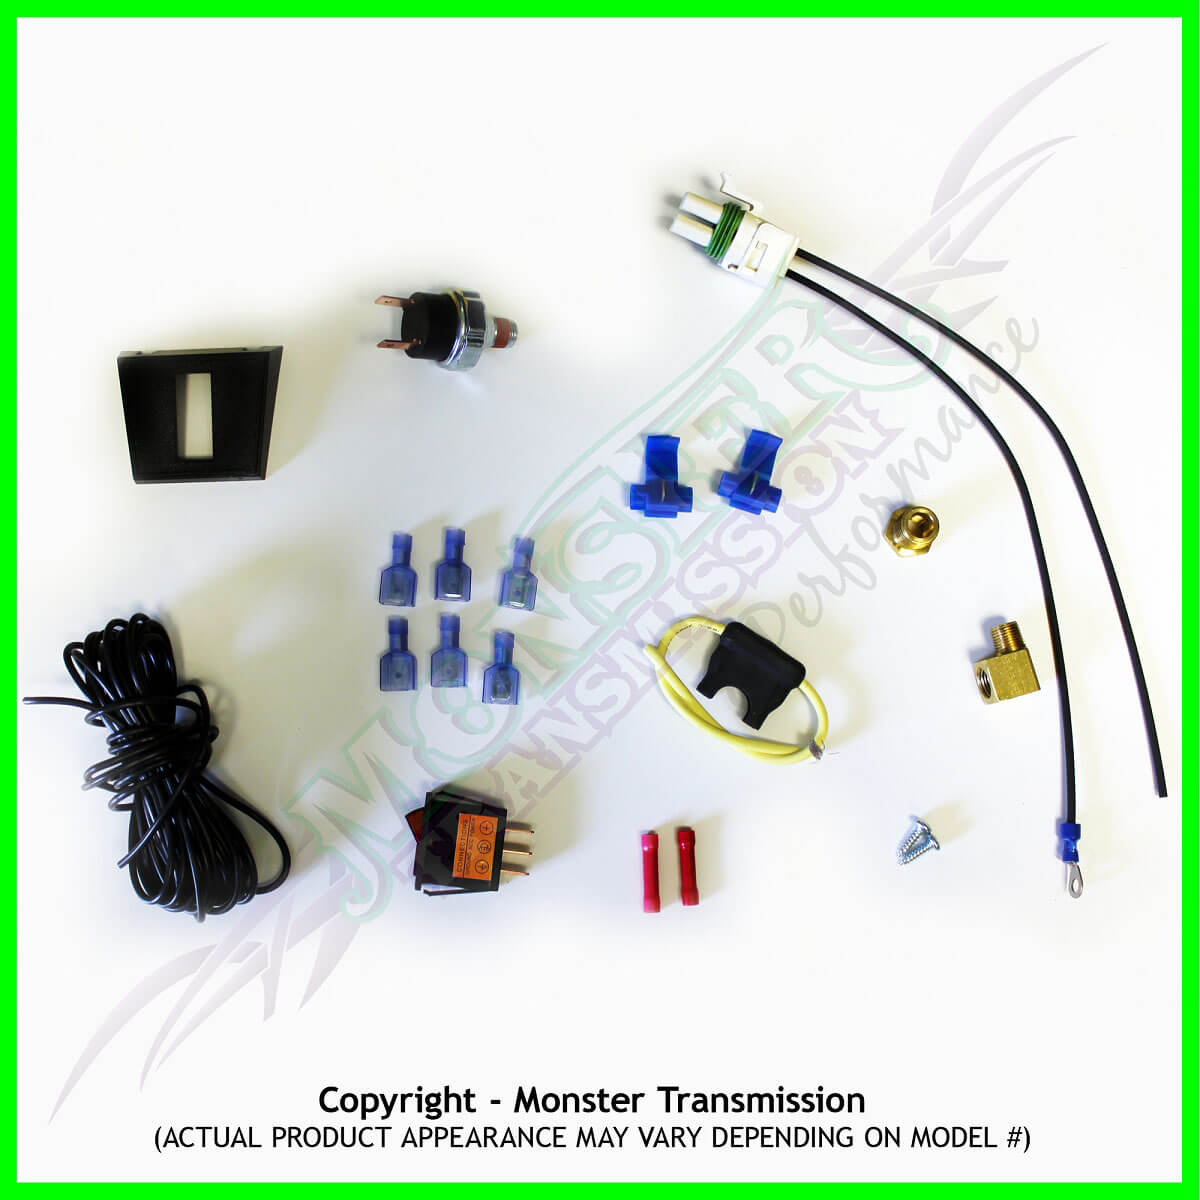 Transmission Wiring Harness on pet harness, electrical harness, alpine stereo harness, maxi-seal harness, swing harness, fall protection harness, oxygen sensor extension harness, amp bypass harness, radio harness, engine harness, battery harness, obd0 to obd1 conversion harness, safety harness, pony harness, nakamichi harness, suspension harness, dog harness, cable harness,